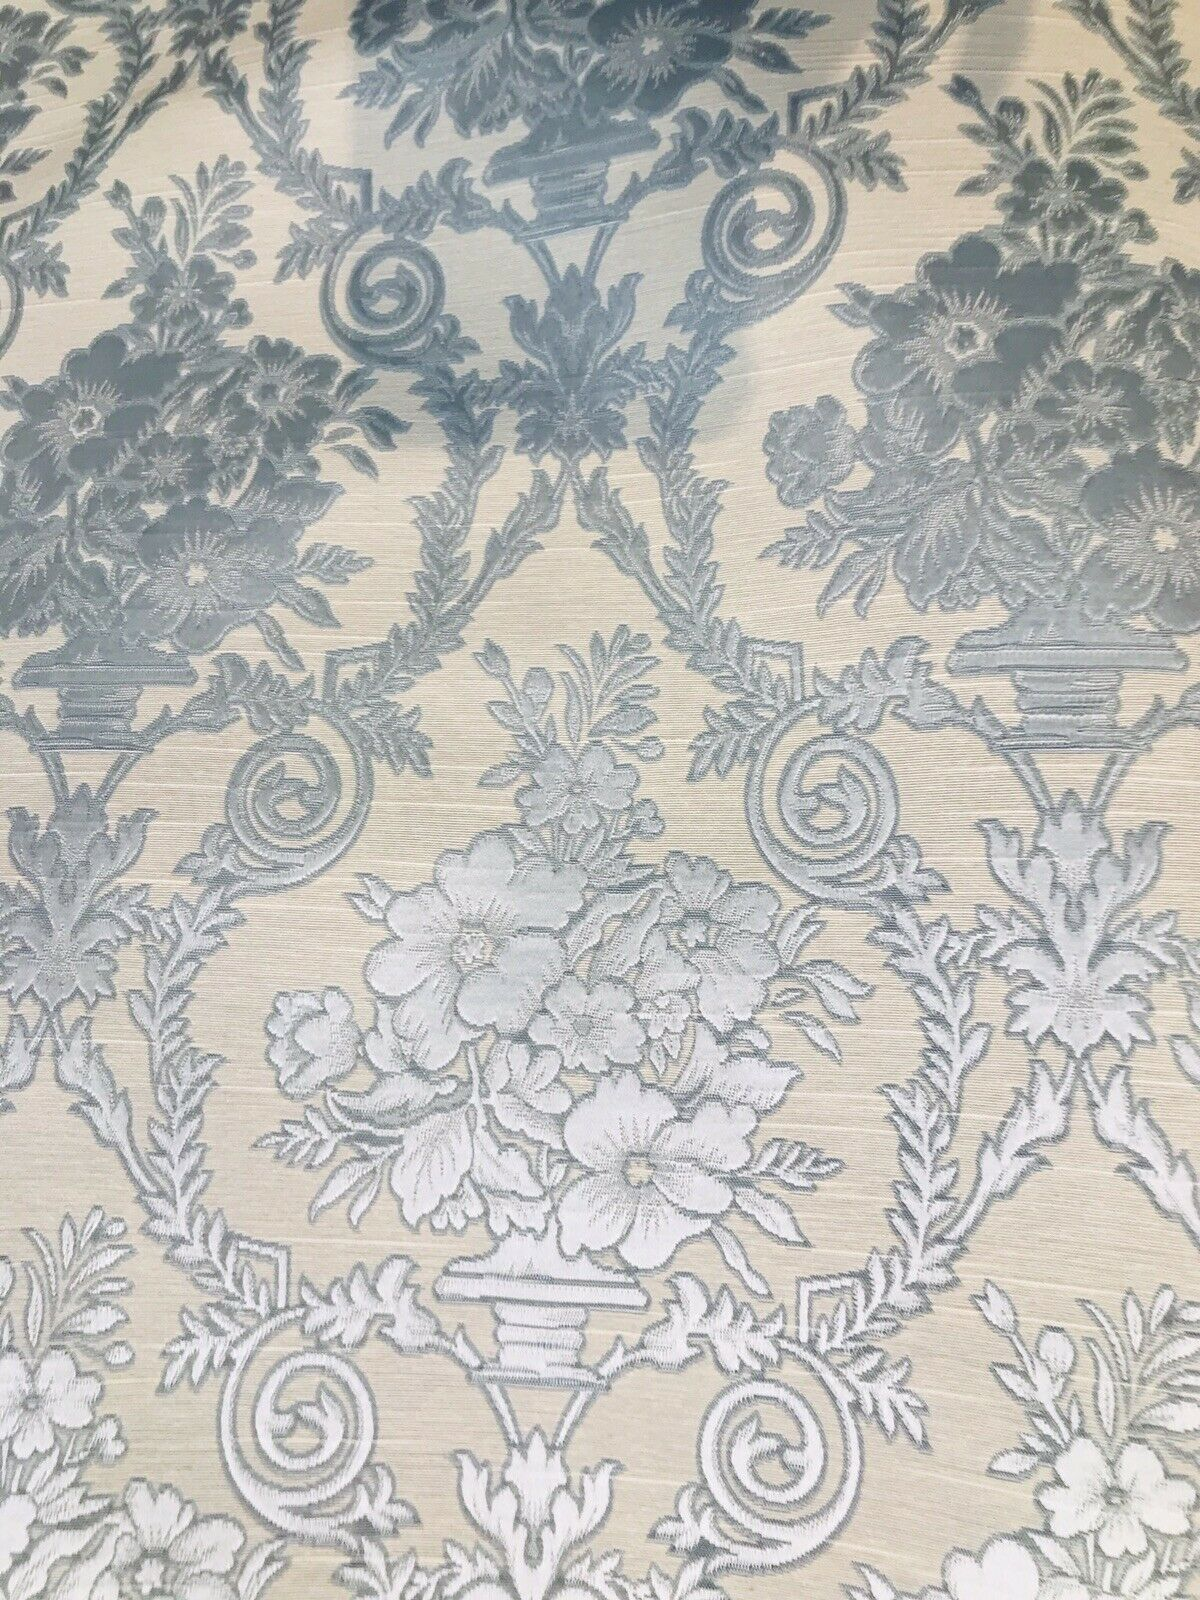 NEW! Designer Brocade Satin Fabric - Blue Neoclassical Floral Upholstery Damask